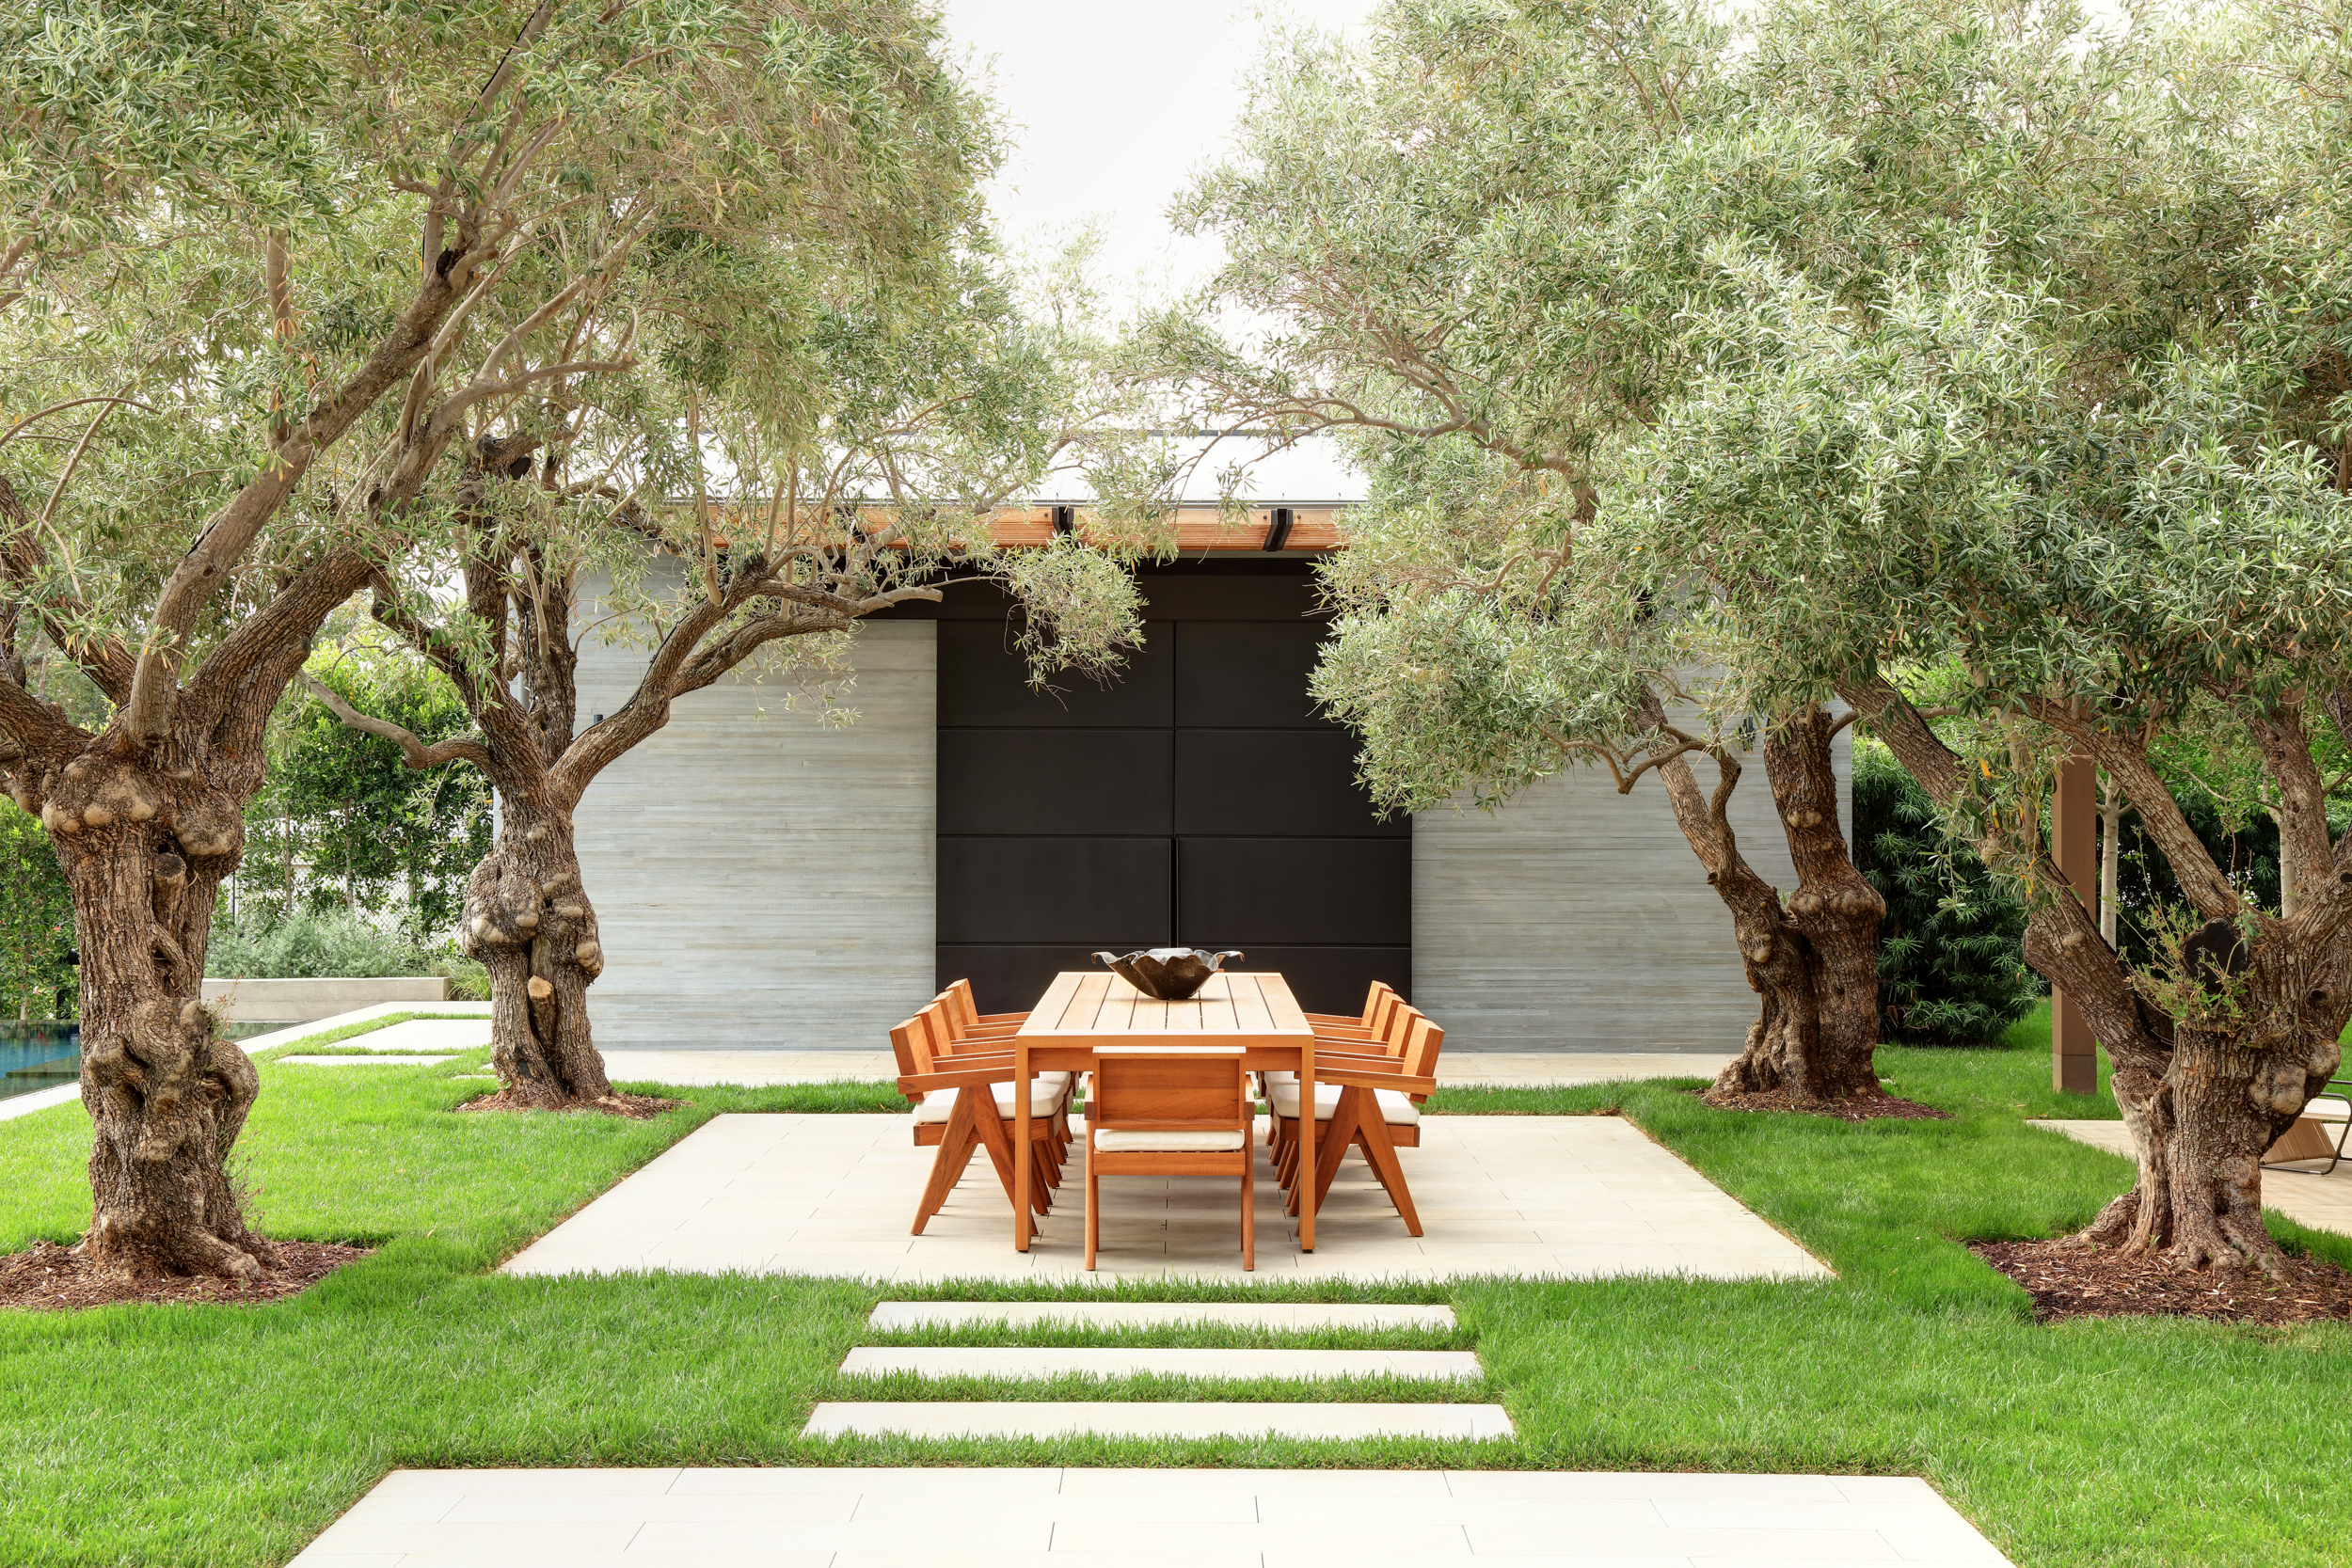 grass courtyard with central square cement floor and mature trees in each corner